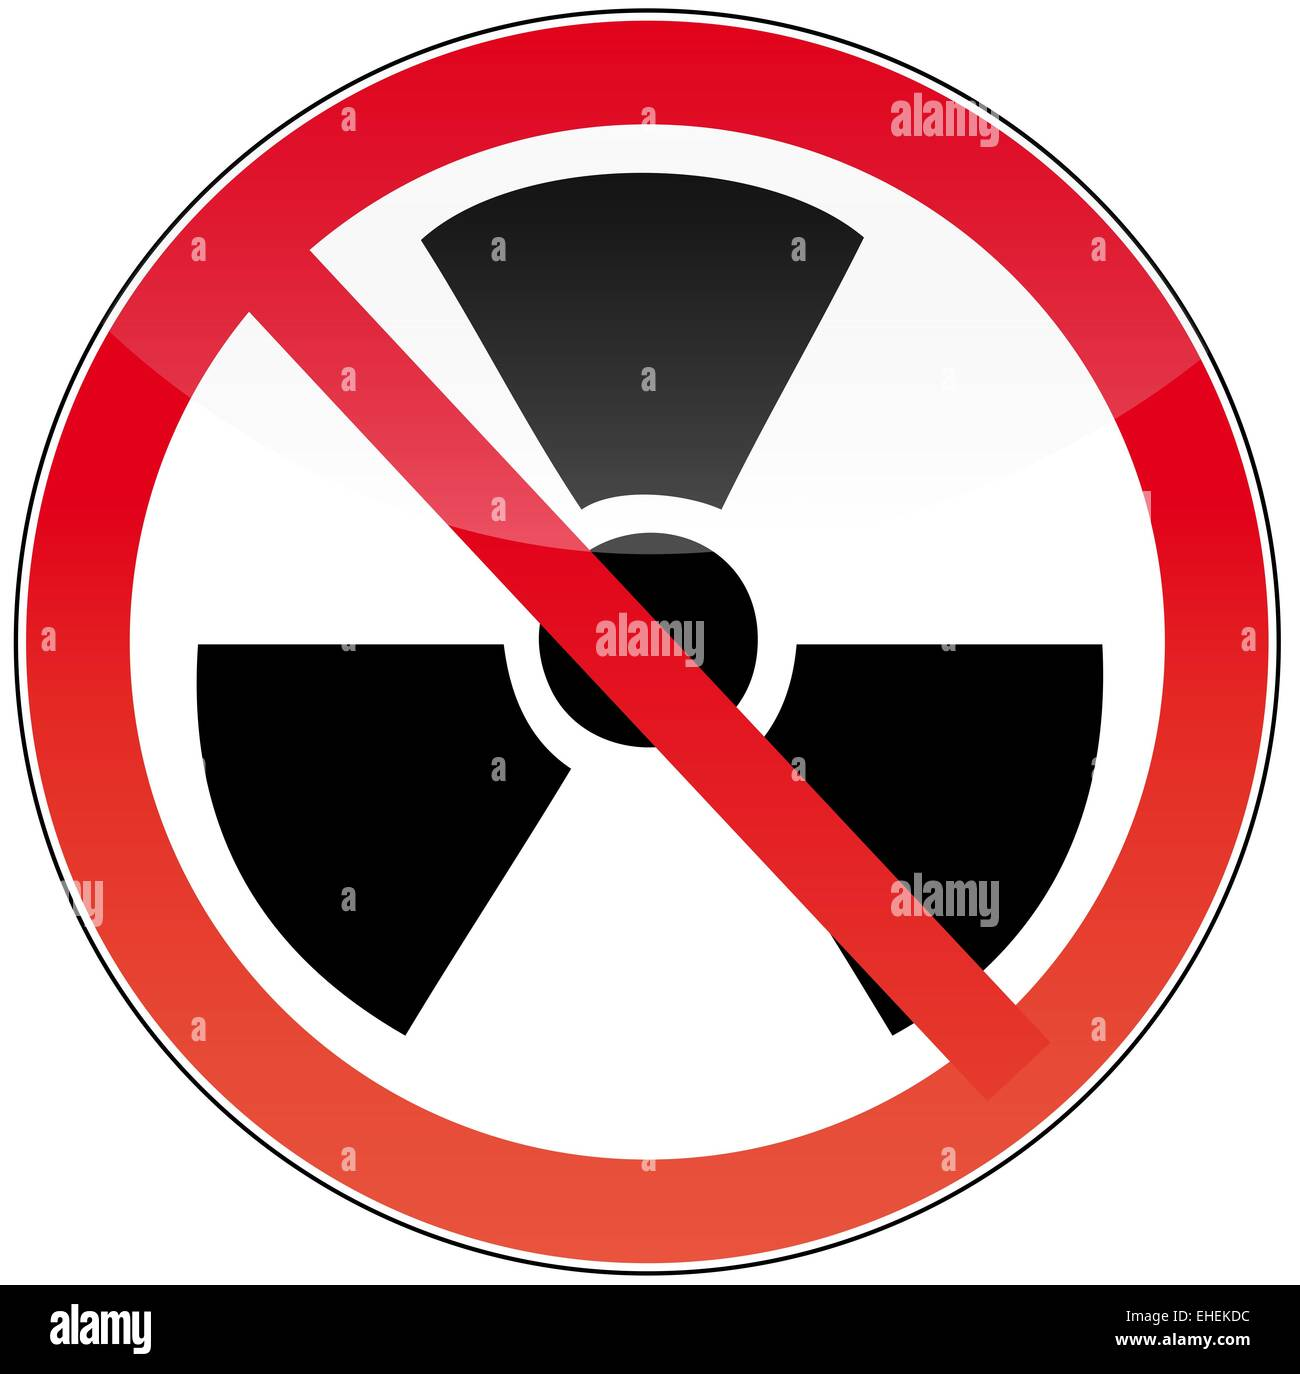 against nuclear power - Stock Image